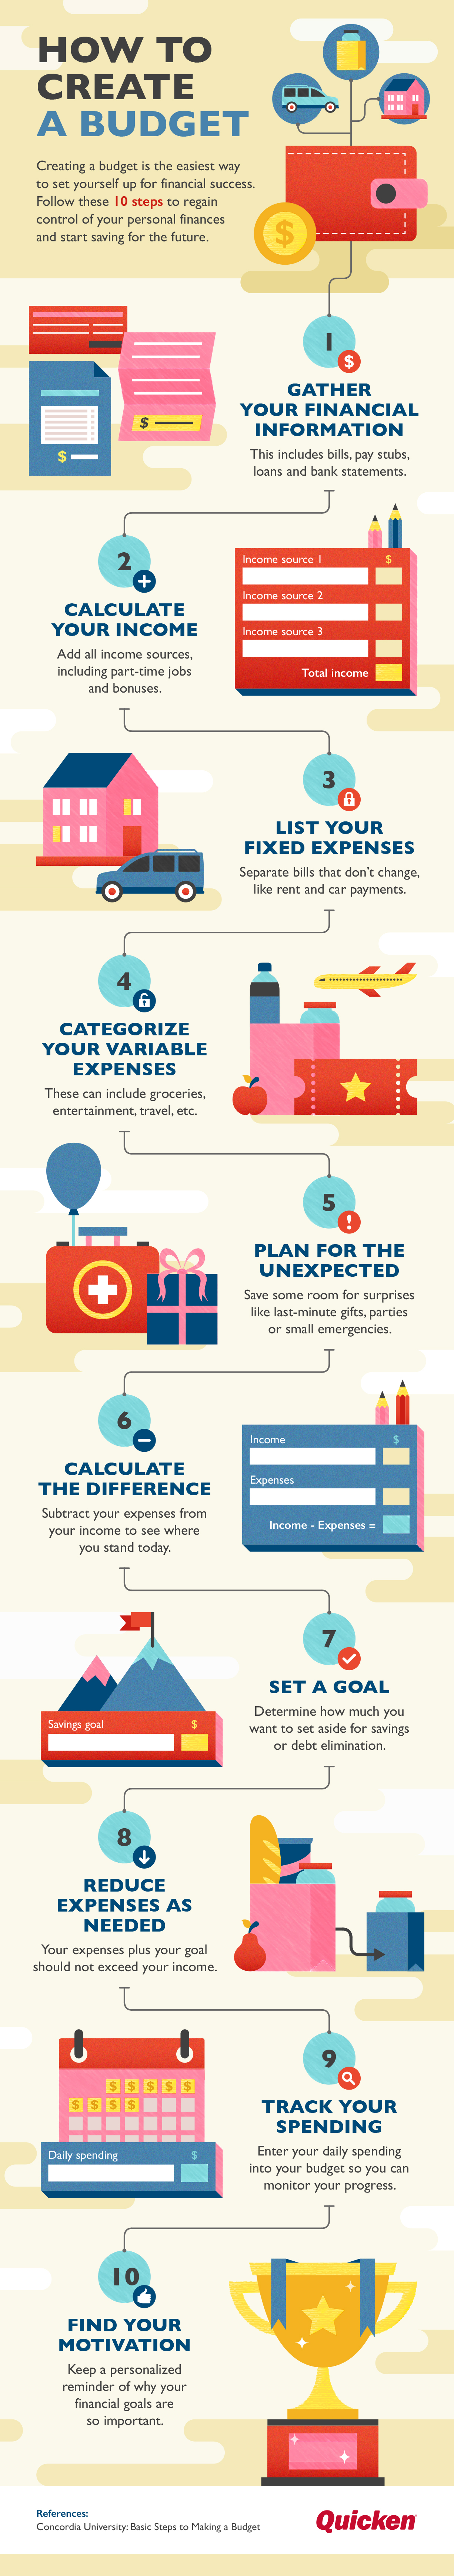 How to Create a Budget [Infographic]